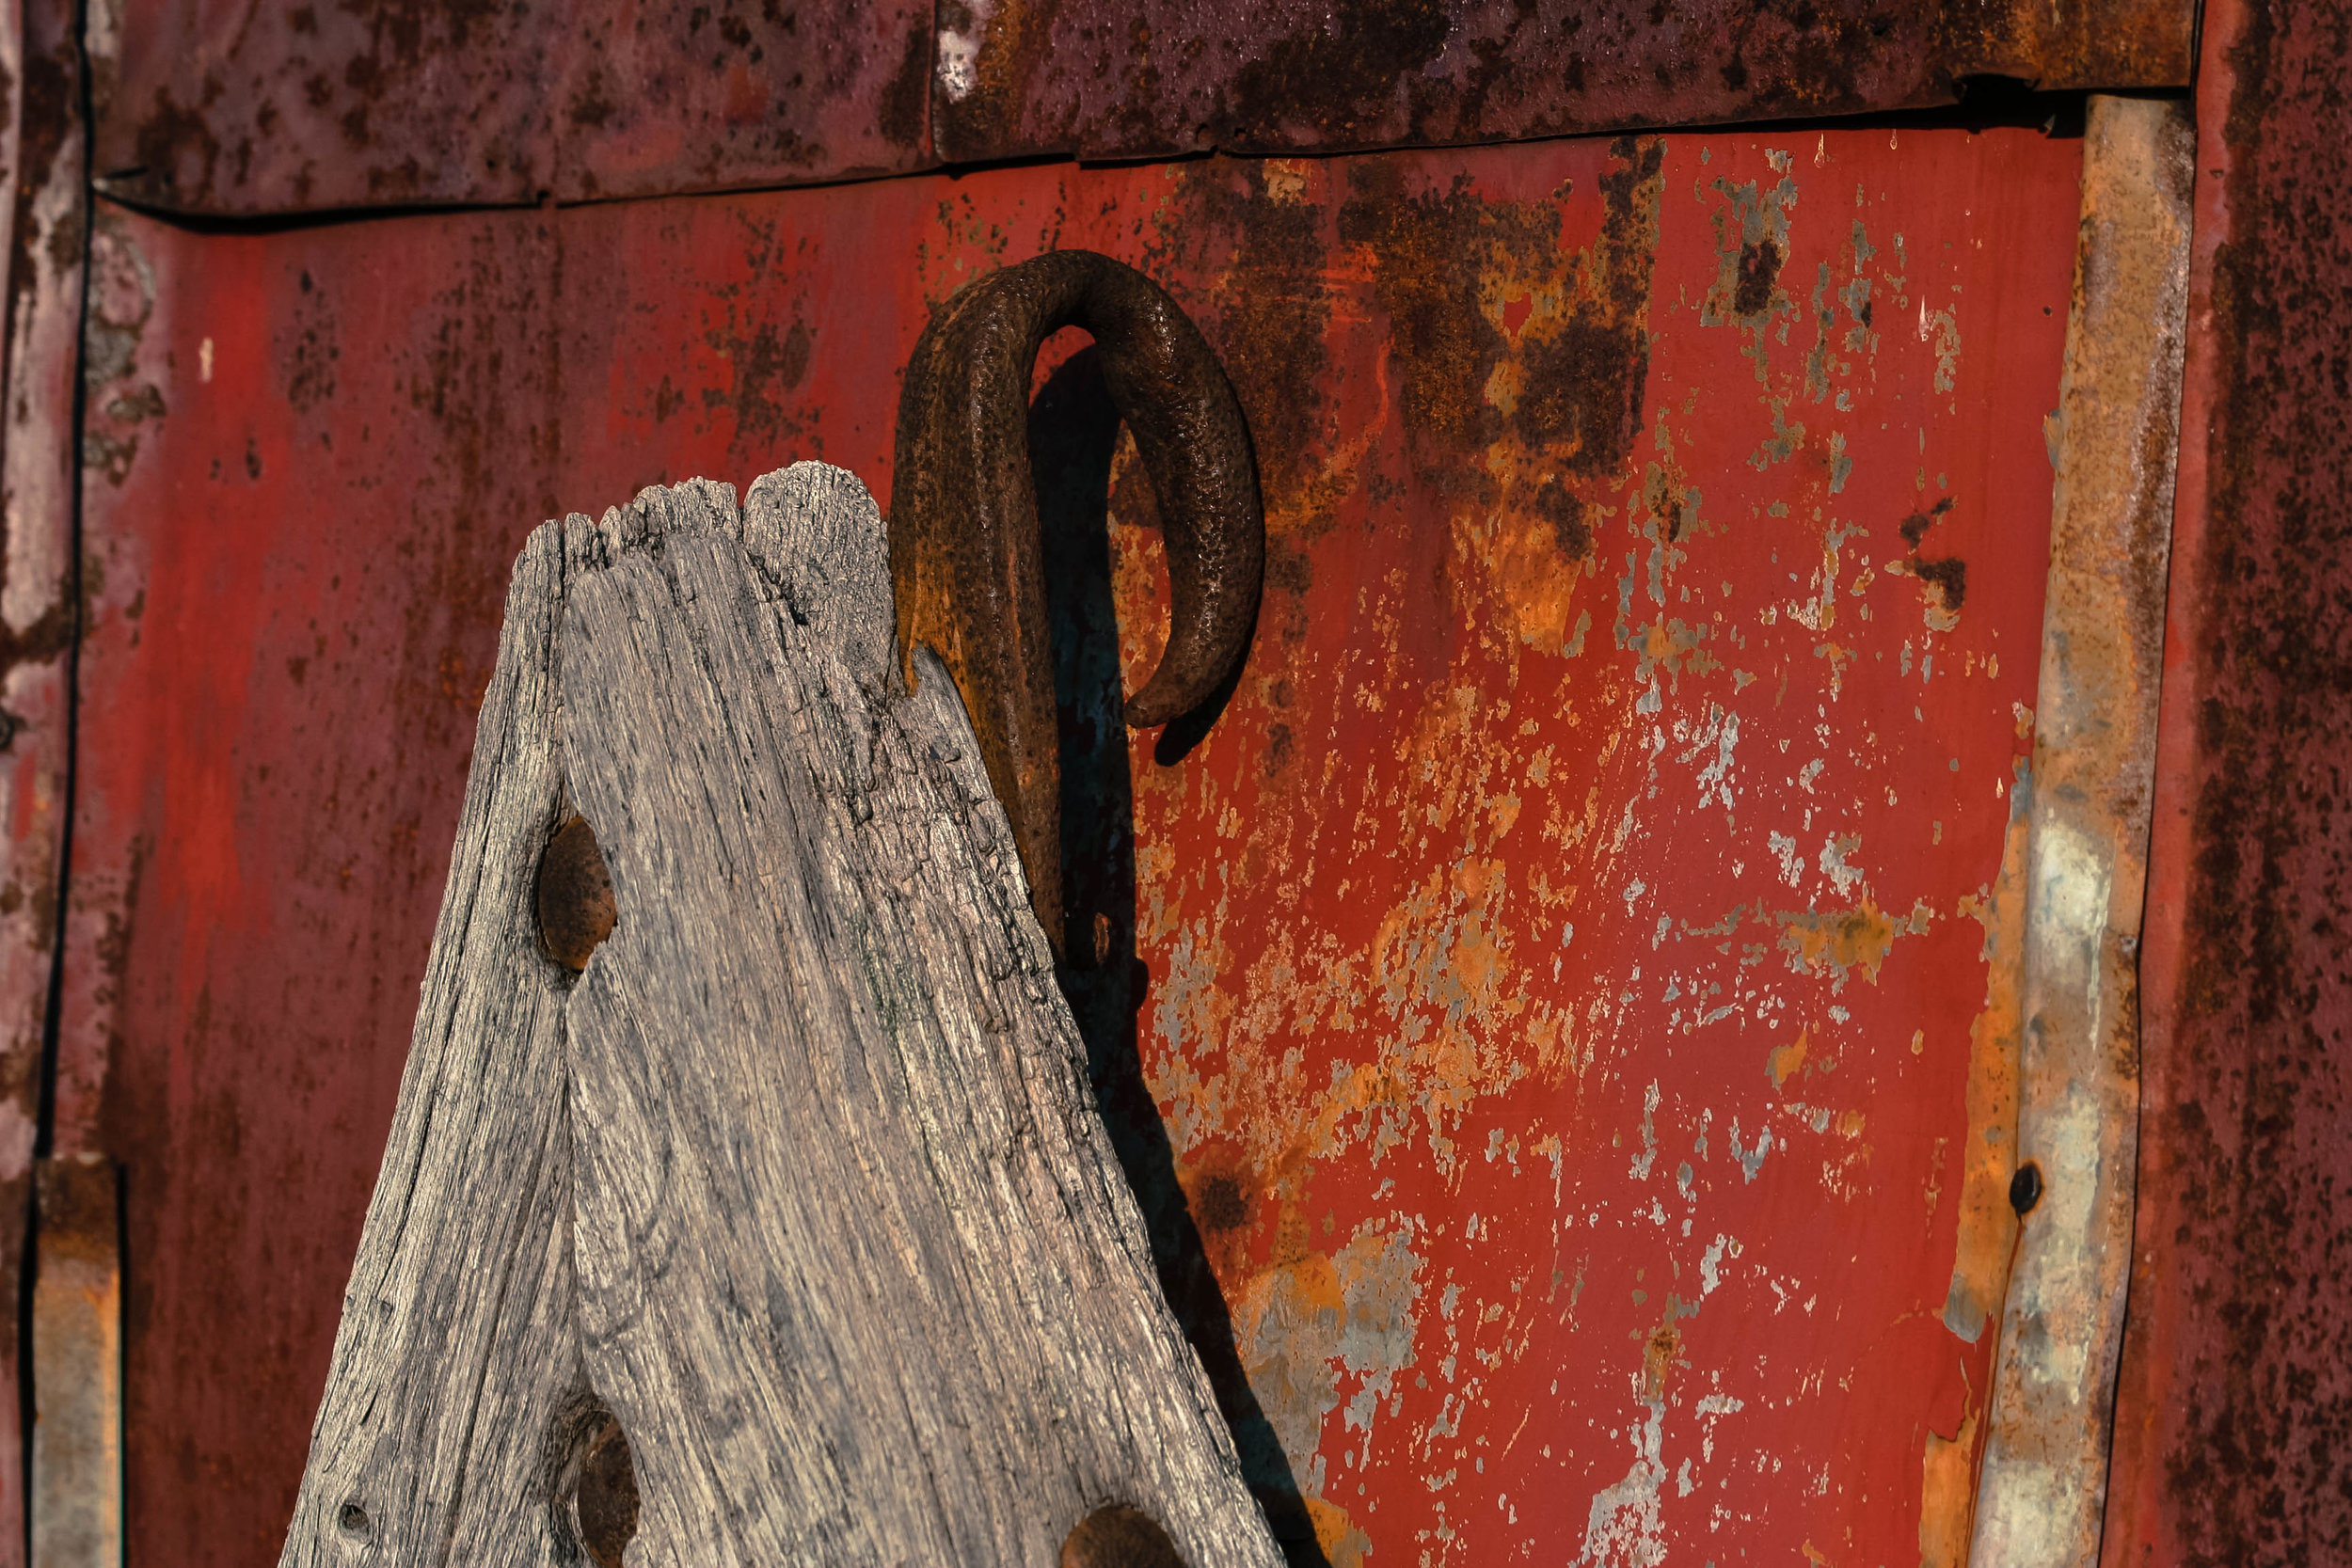 A sort of tiller, to be horse drawn, with black-smithed railroad spike components. Leaning against an old chicken coop that belonged to the black tenant farmers.